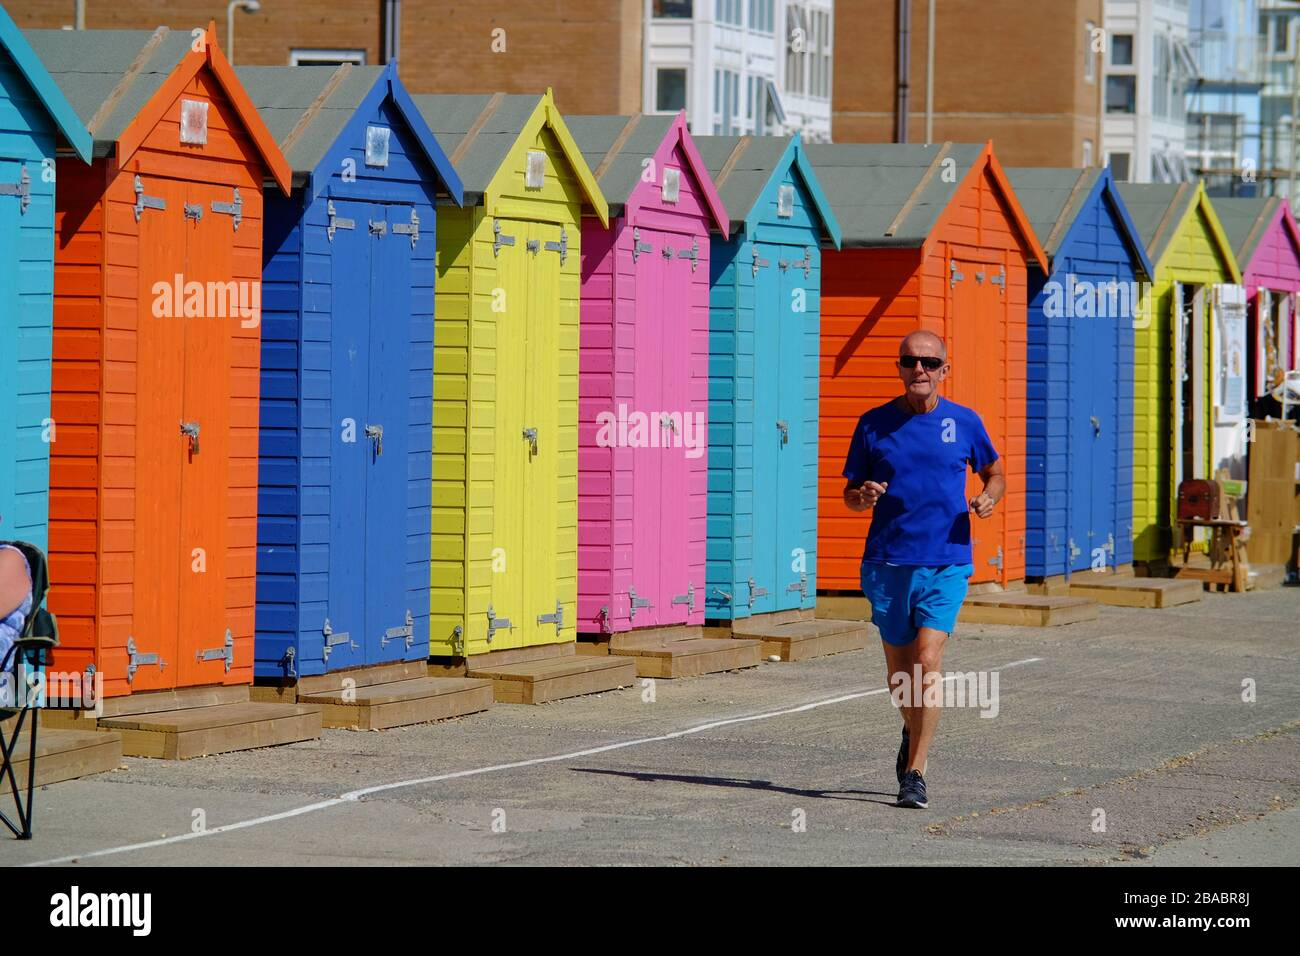 Older man jogging along a seafront by colourful beach huts. Seaford, UK Stock Photo